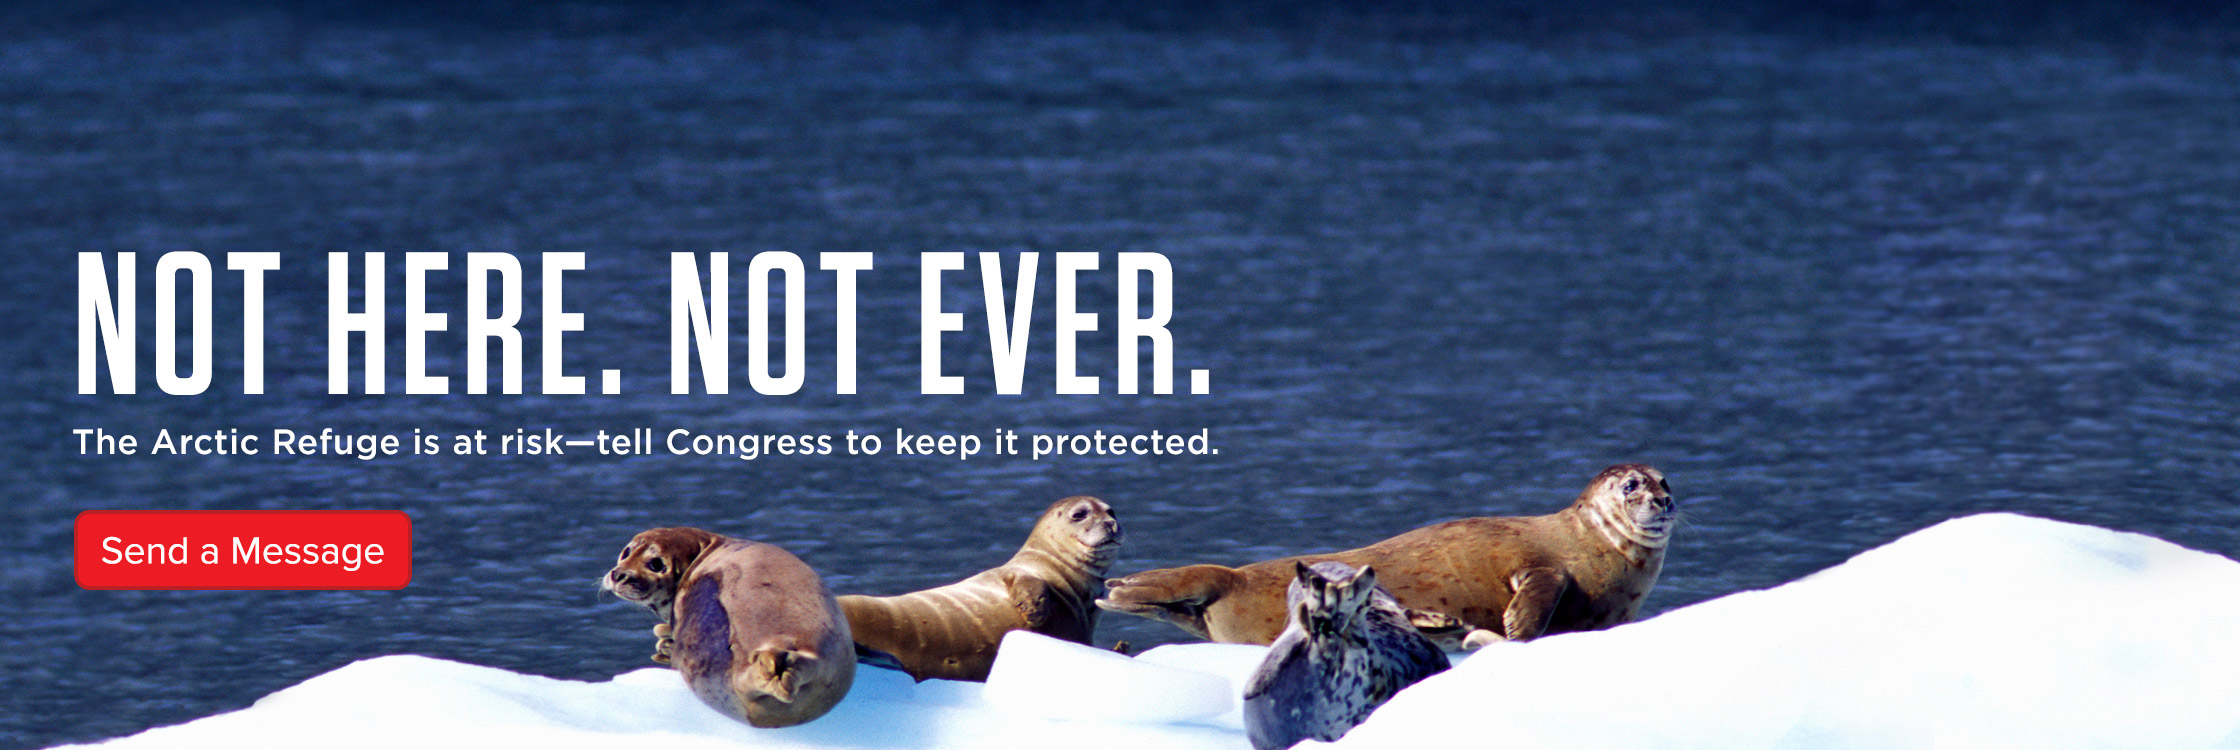 An image of seals with text: The Arctic Wildlife Refuge is at risk. Tell Congress to keep it protected.